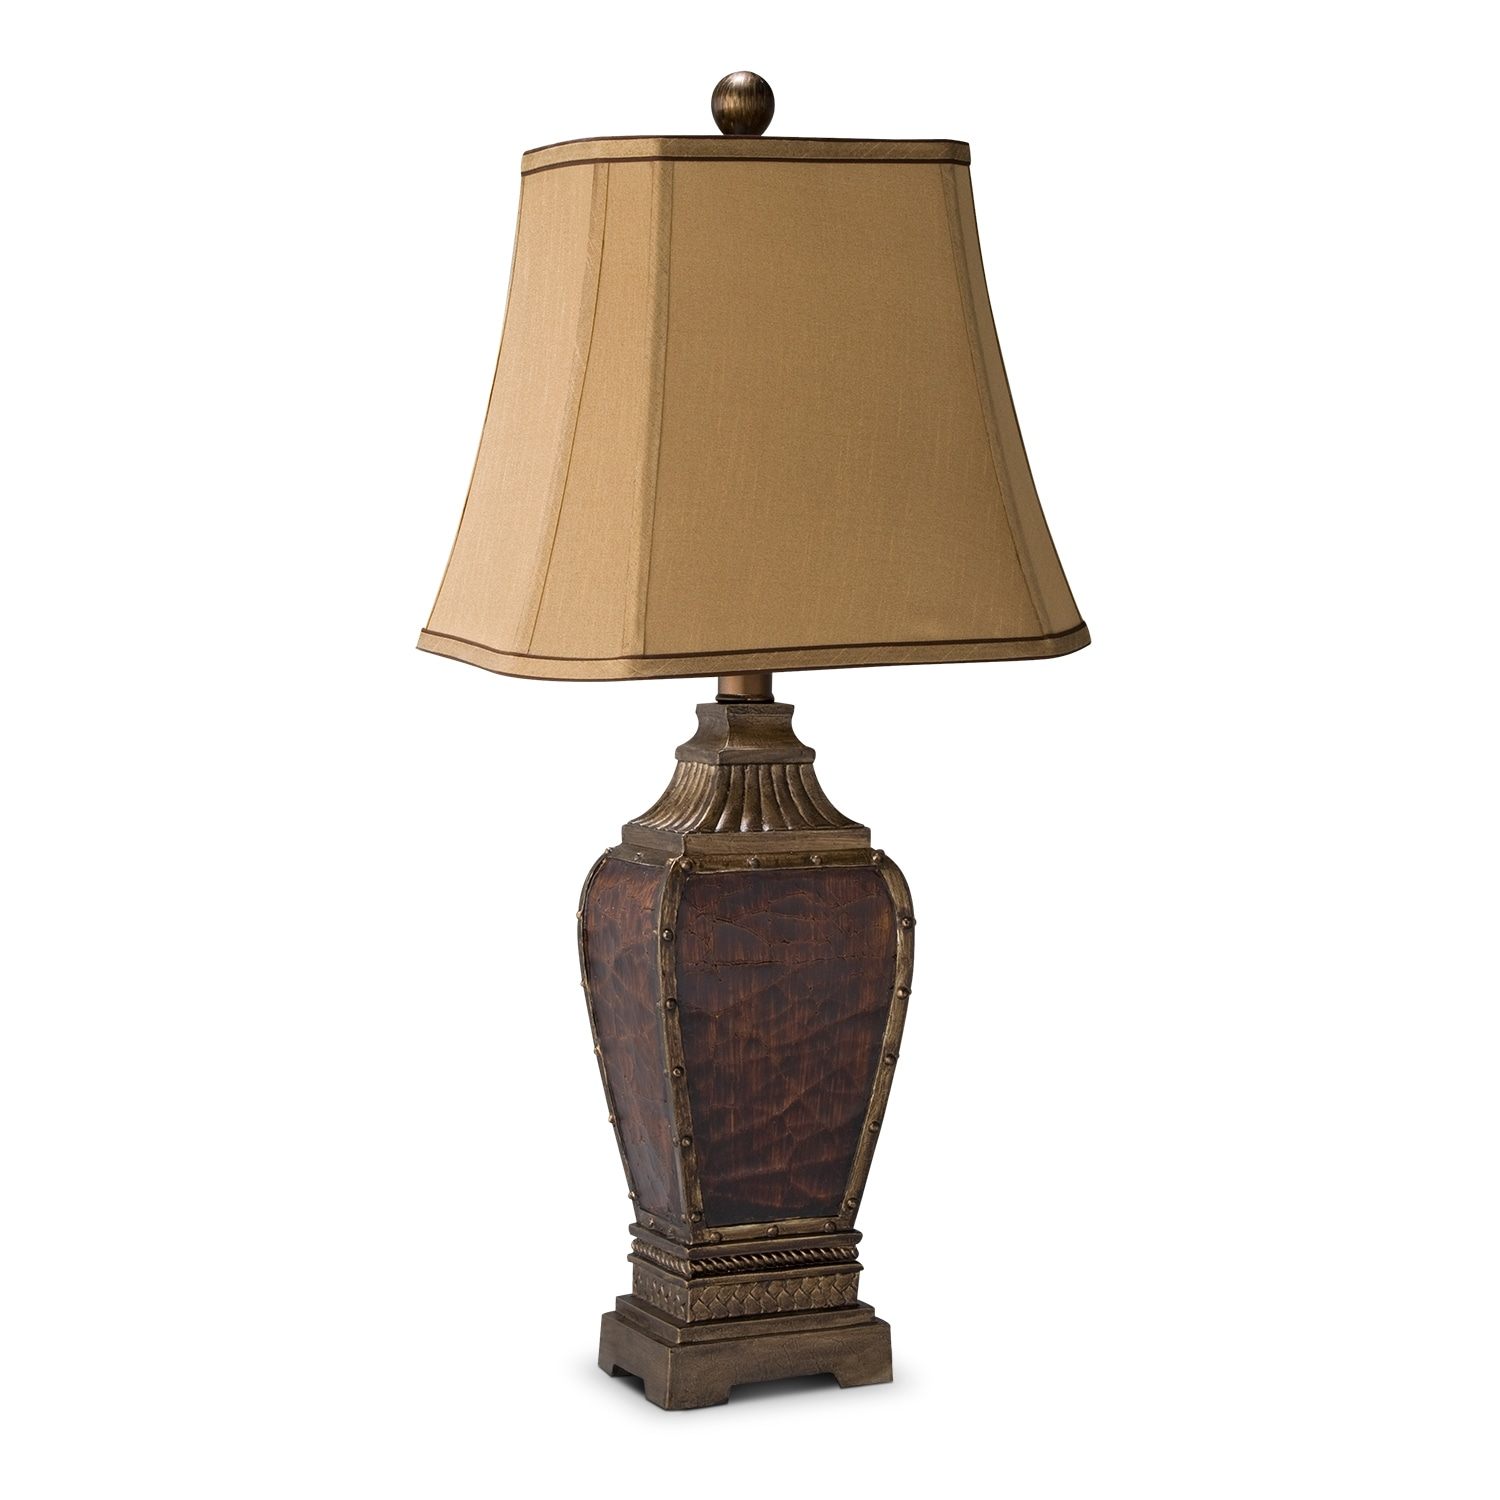 Home Accessories - Leather Nails Table Lamp